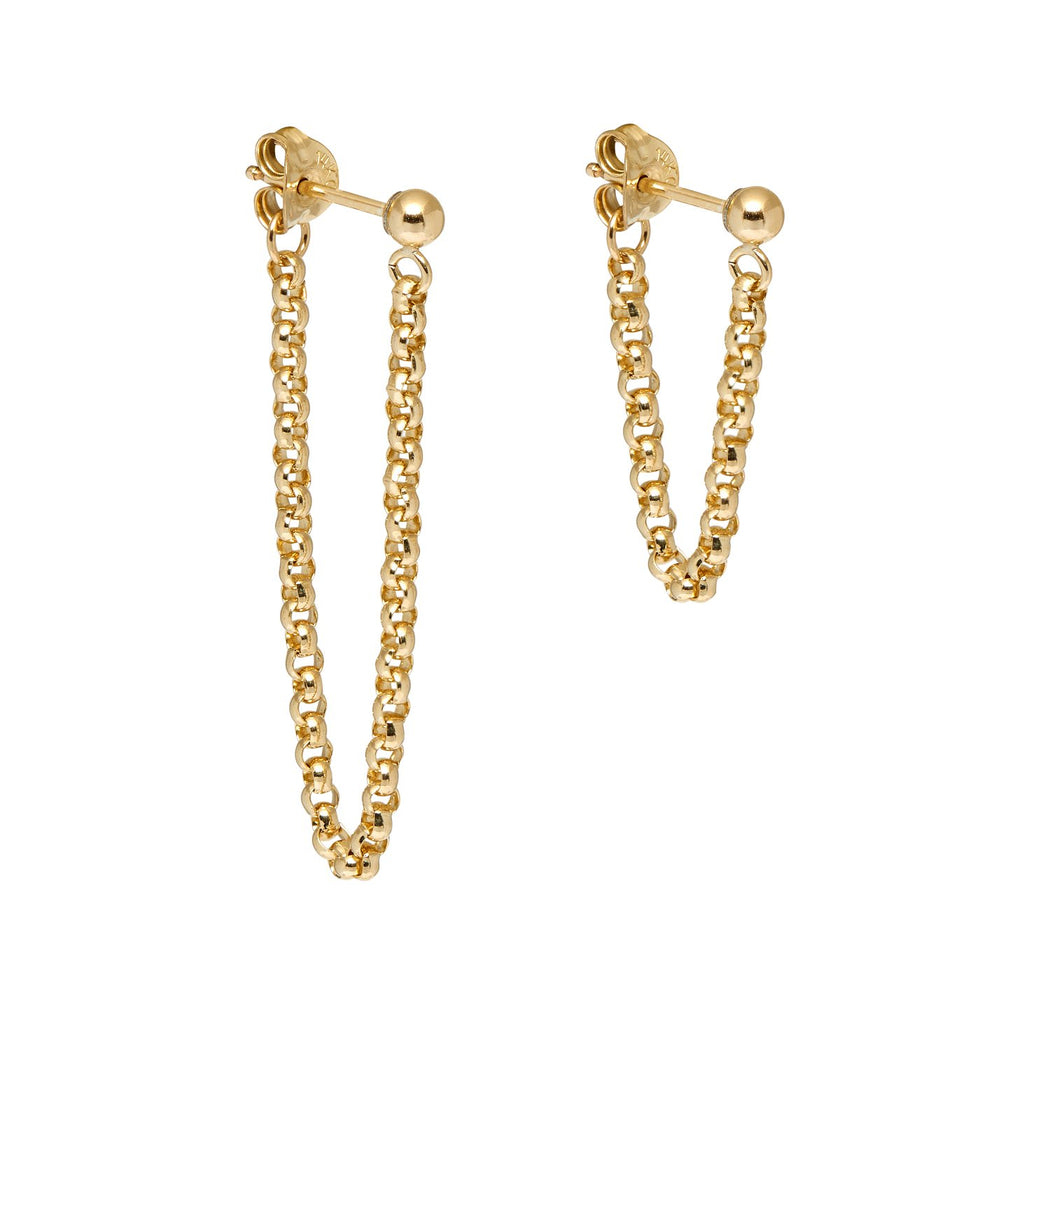 Single Long Chain Loop Stud Earrings